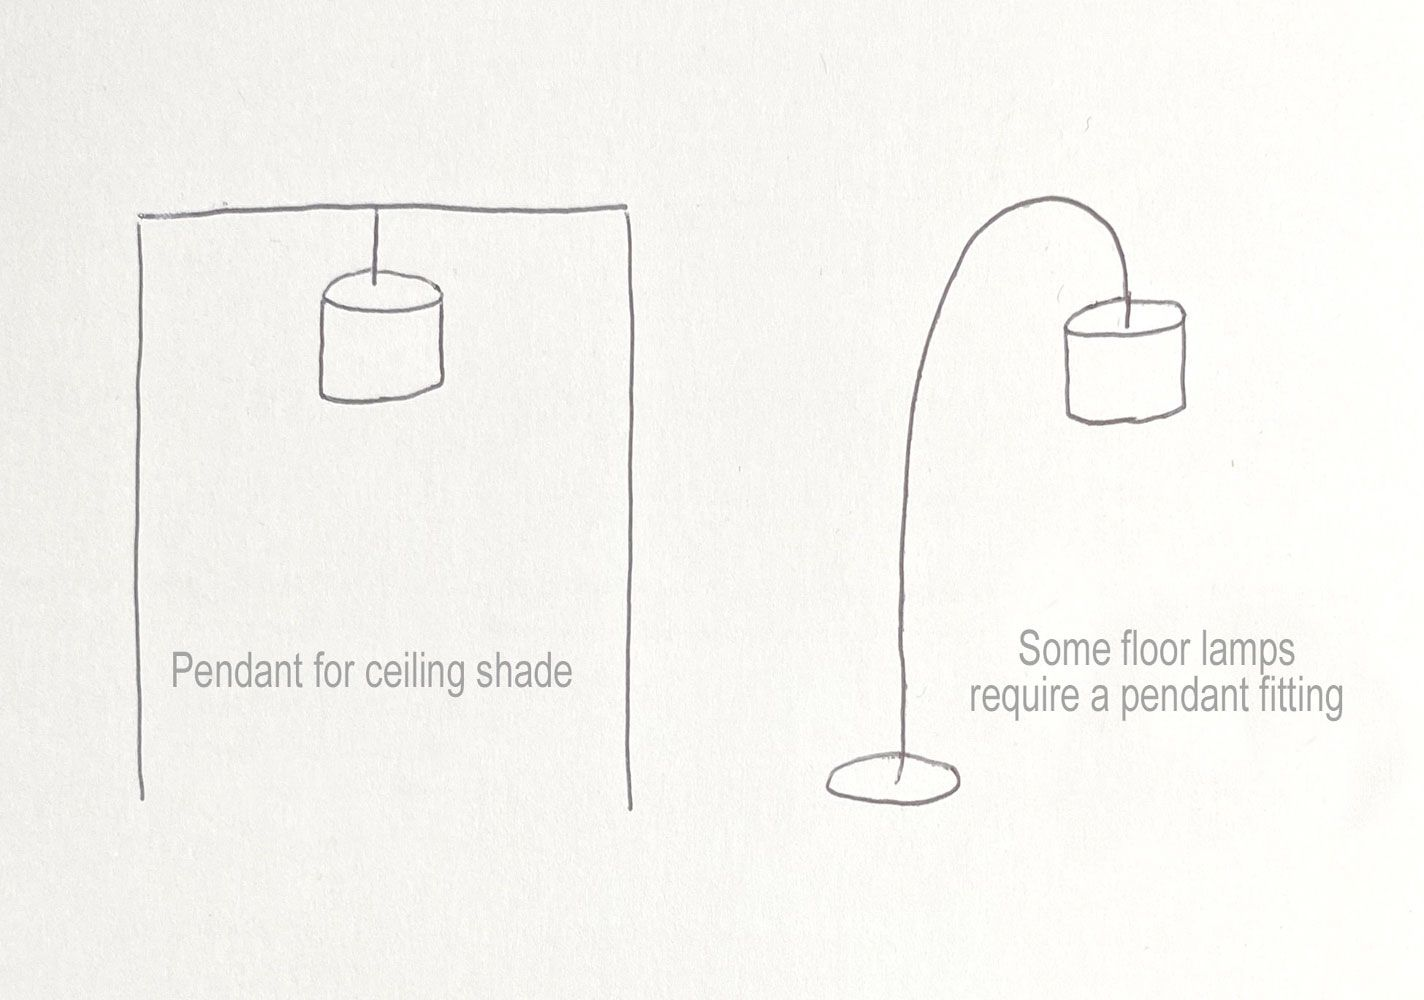 Pendant fitting for ceiling or standard lamp